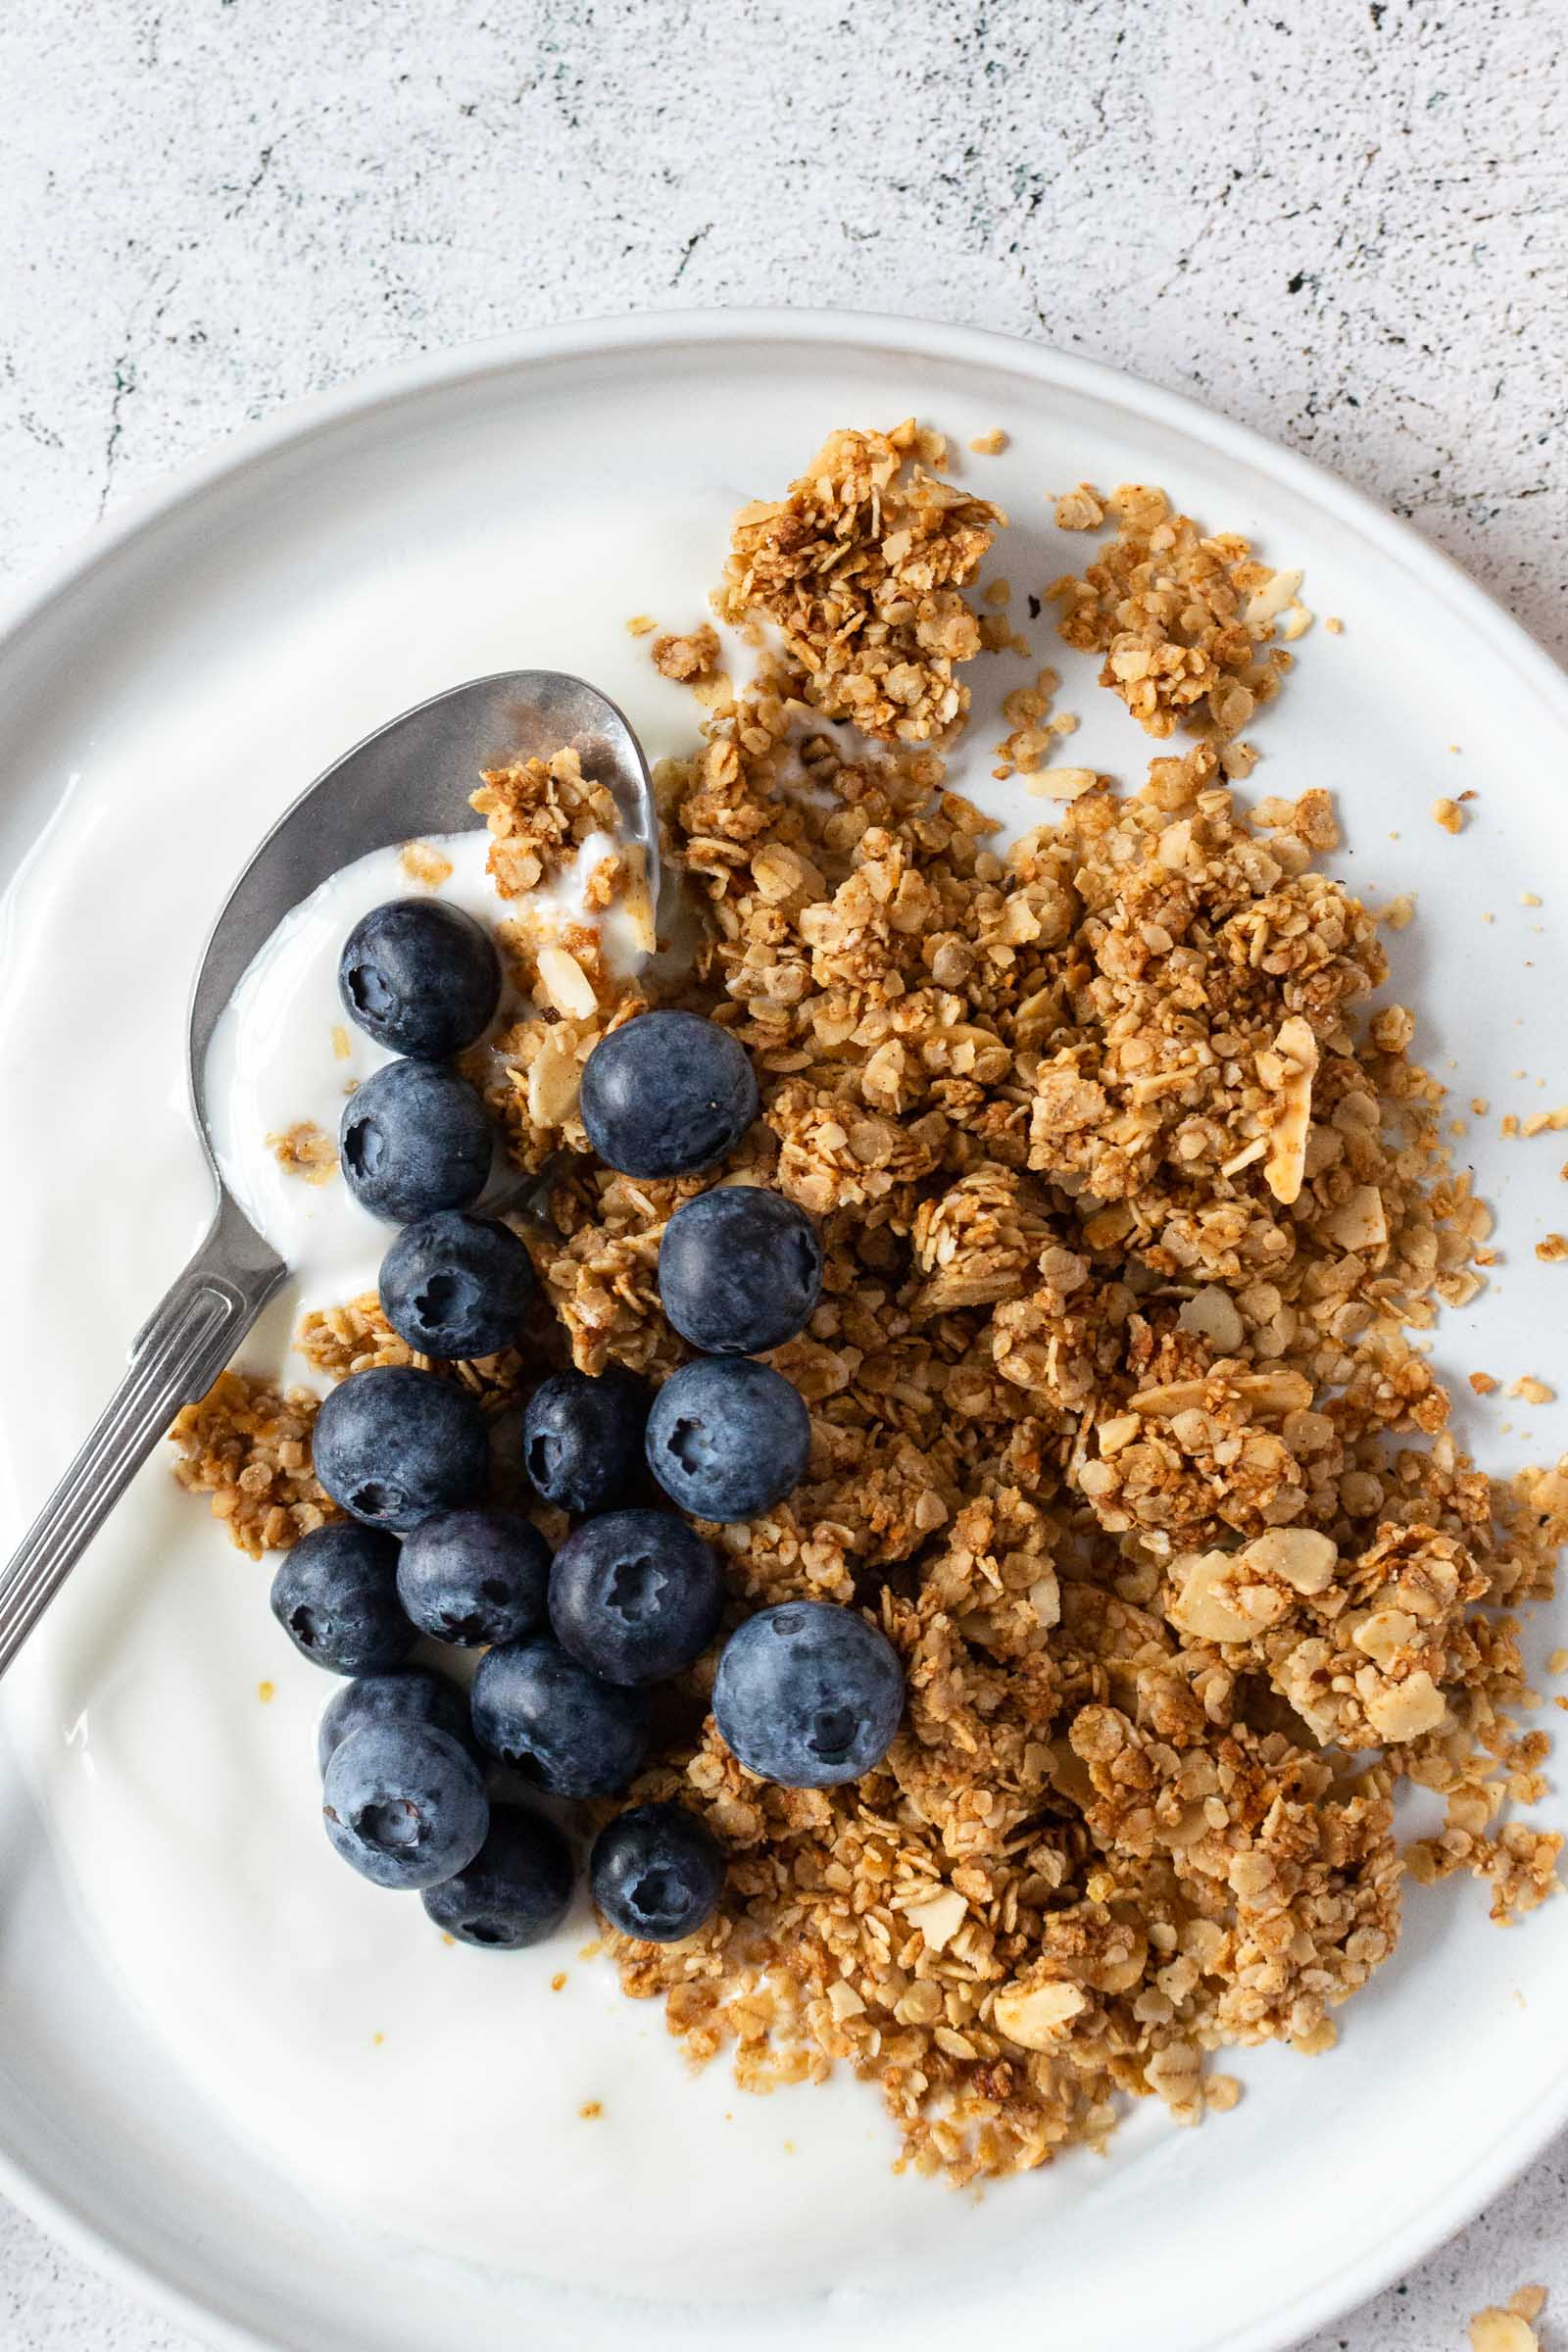 Morning Glory Granola